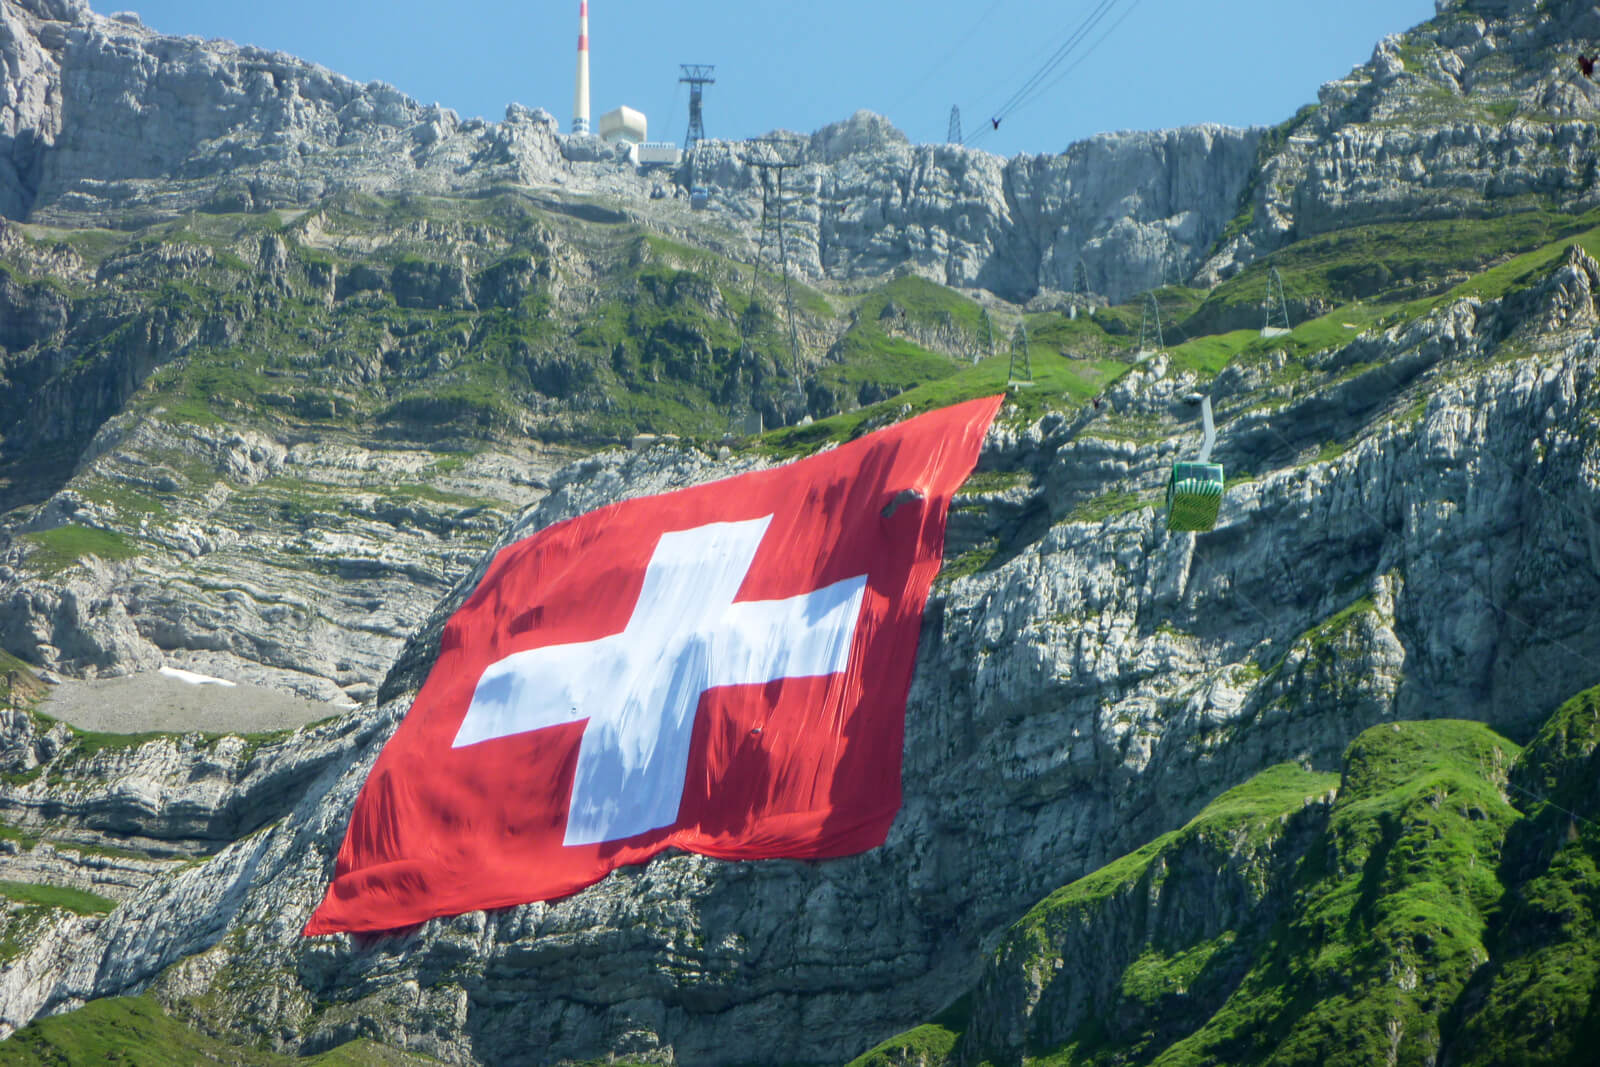 Mt. Säntis - Largest Swiss Flag Display